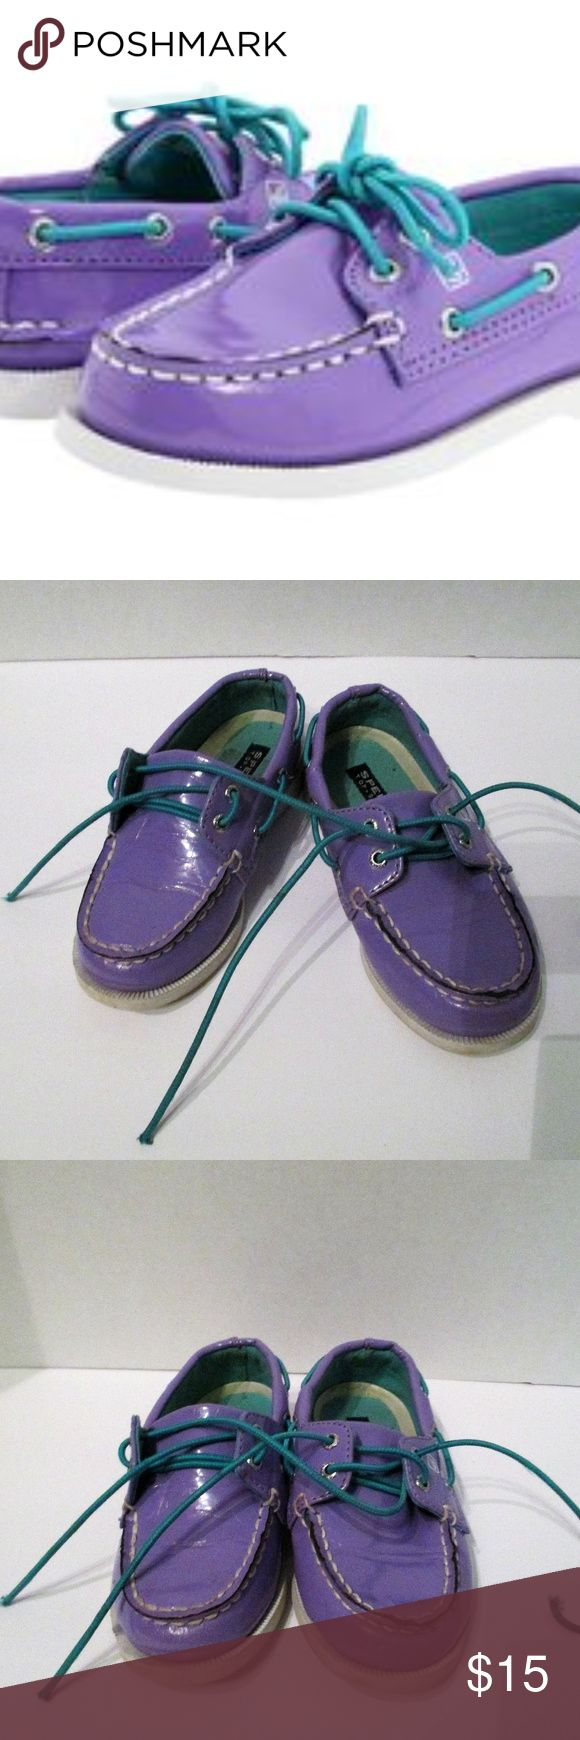 Sperry Top-Sider Purple Patent Leather Sz 10M Pre-Loved Sperry Top-Sider purple patent leather size 10M. Some scuff marks on front of shoe. Please see photos. Sperry Shoes